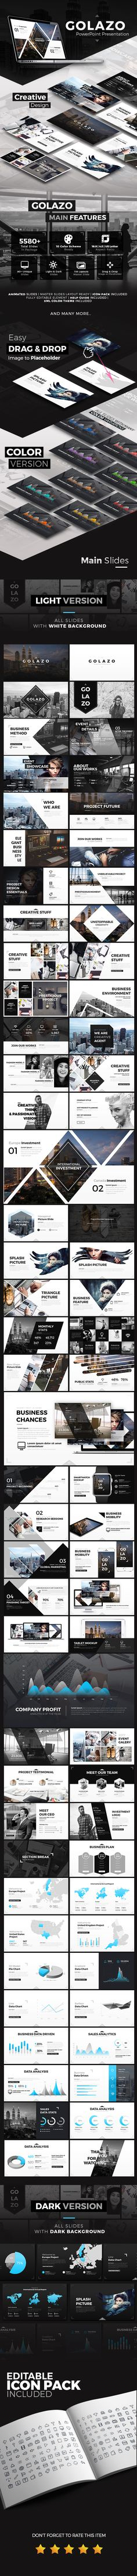 Overview: Flat, Clean, Minimalist, Elegant and Flexible PowerPoint Presentation Template, perfect for presentation corporate and personal use. Very easy to change the color schemes. Just pick one of 20+ color themes in your PowerPoint, including 20 custom color choice and the entire template will change to the color theme you have been chosen.